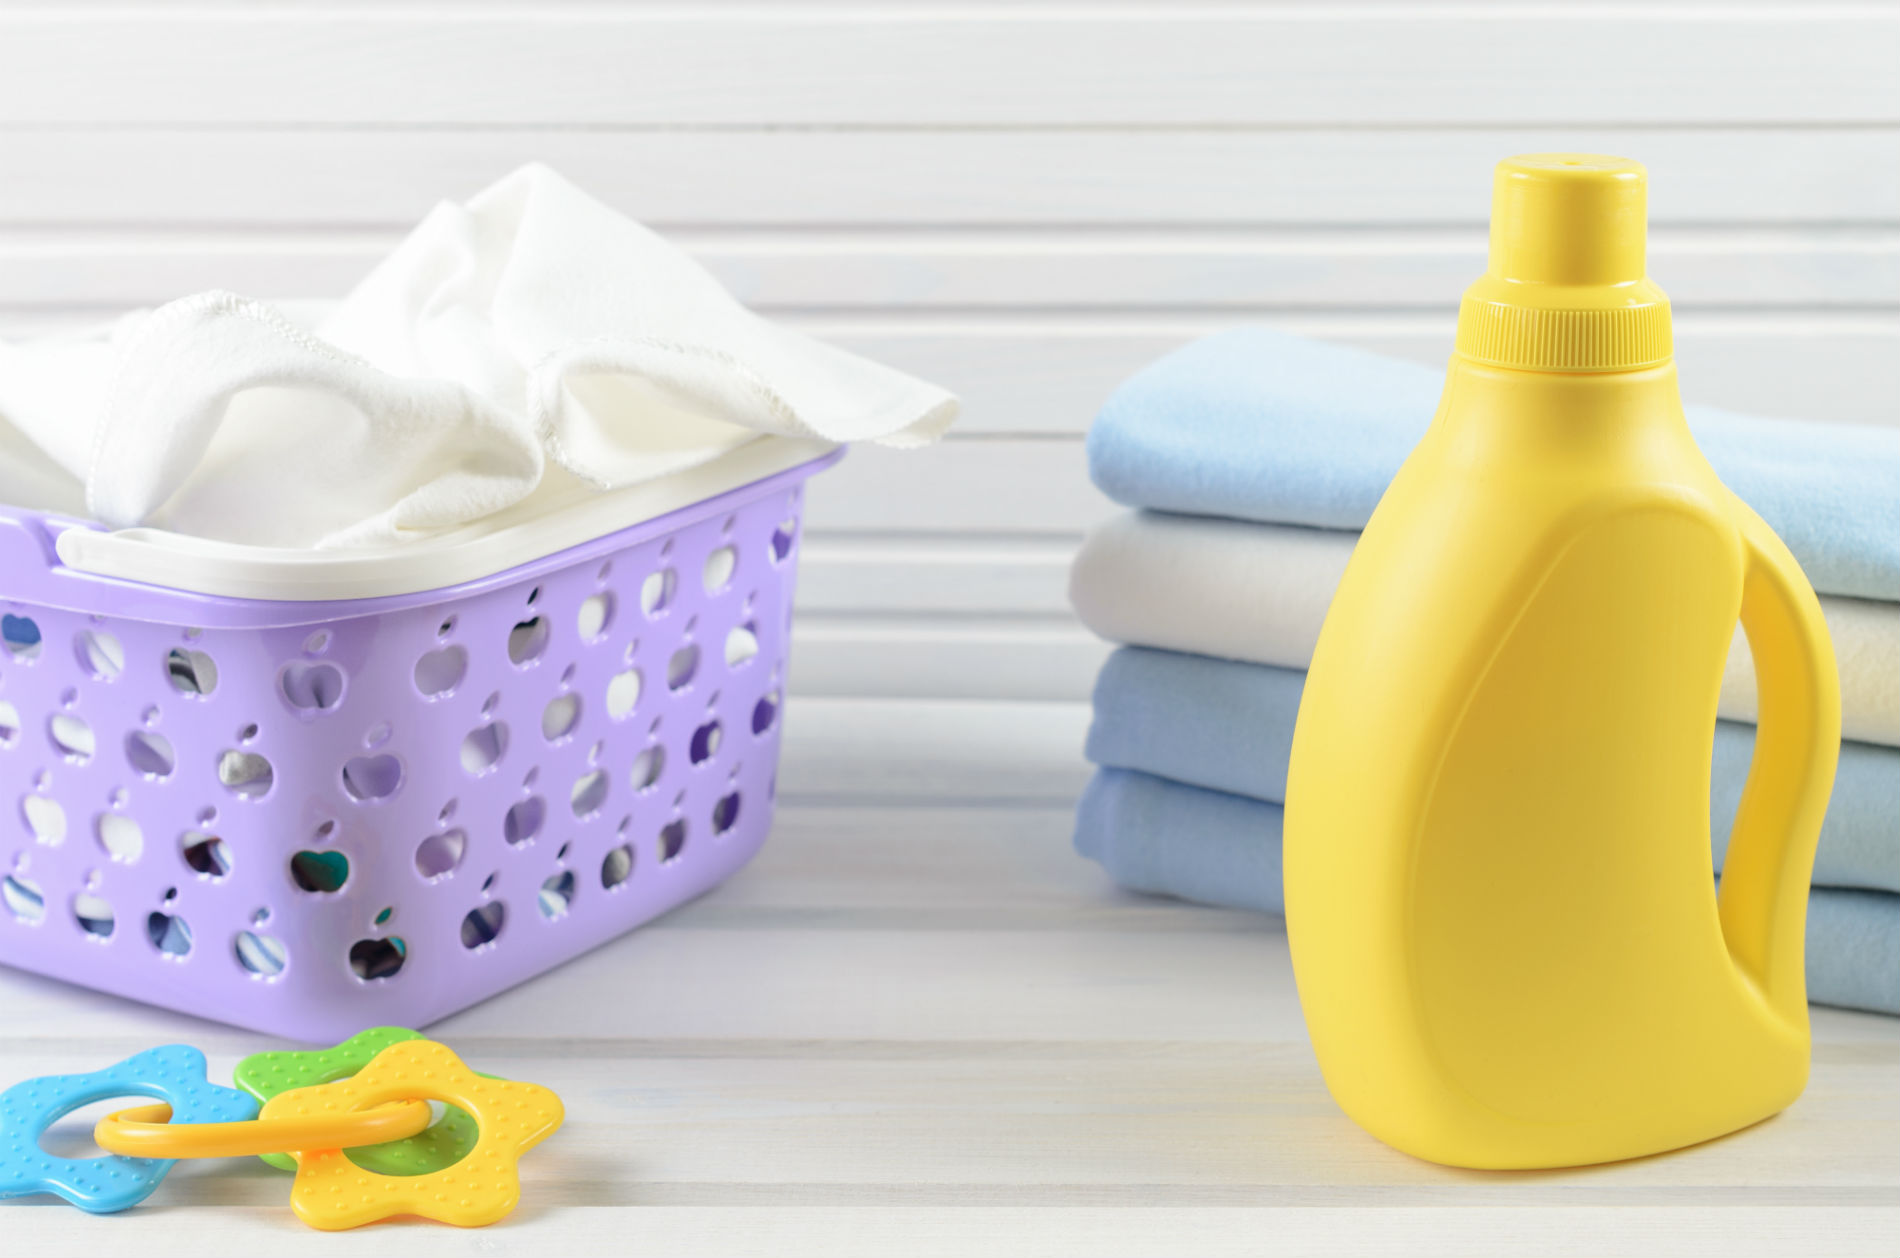 Hypoallergenic Baby Laundry Detergents That Won't Cause Irritation